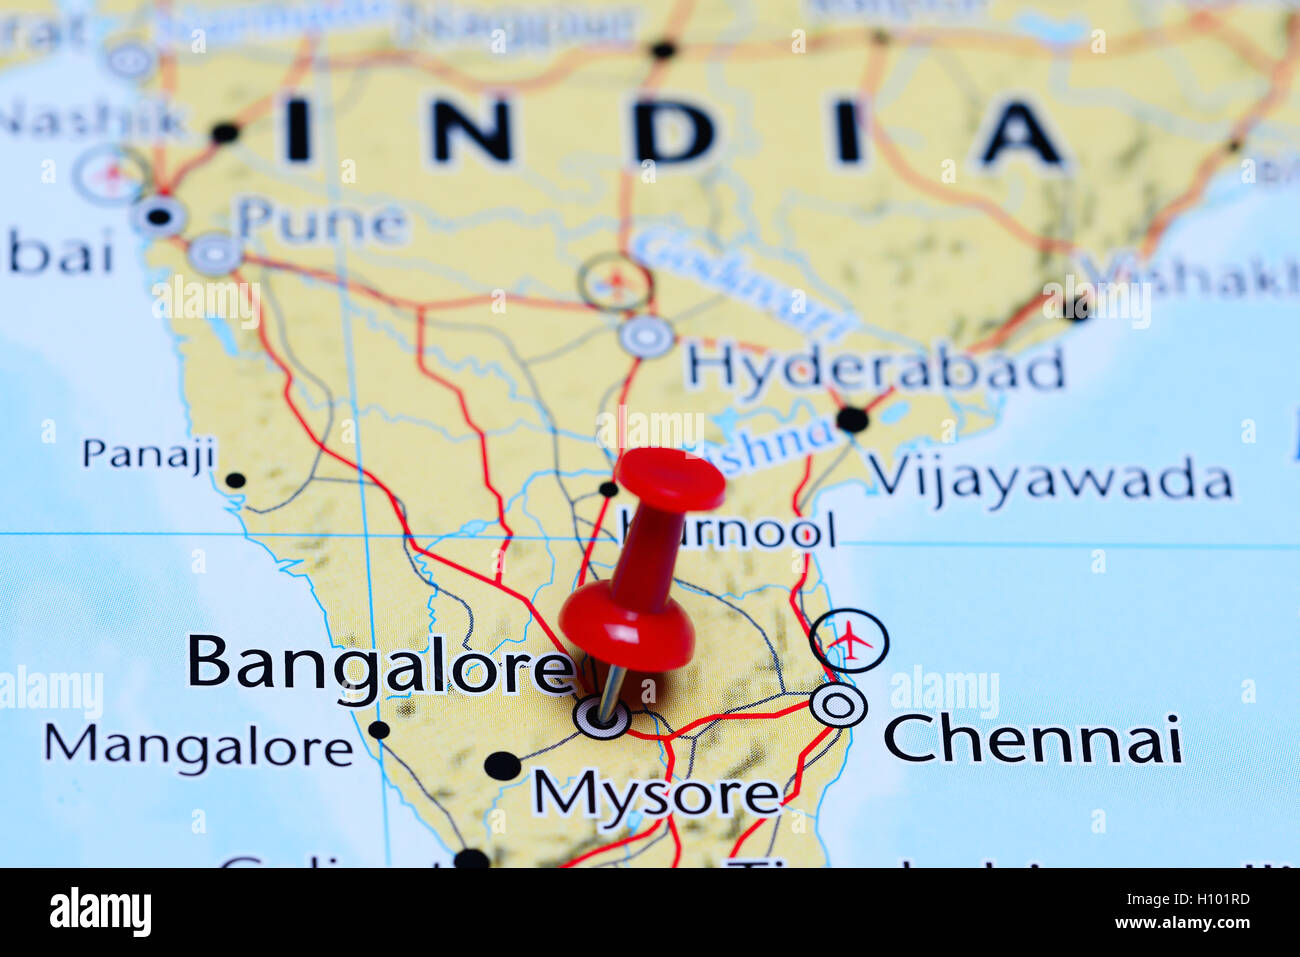 Bangalore India Map Bangalore pinned on a map of India Stock Photo: 121088673   Alamy